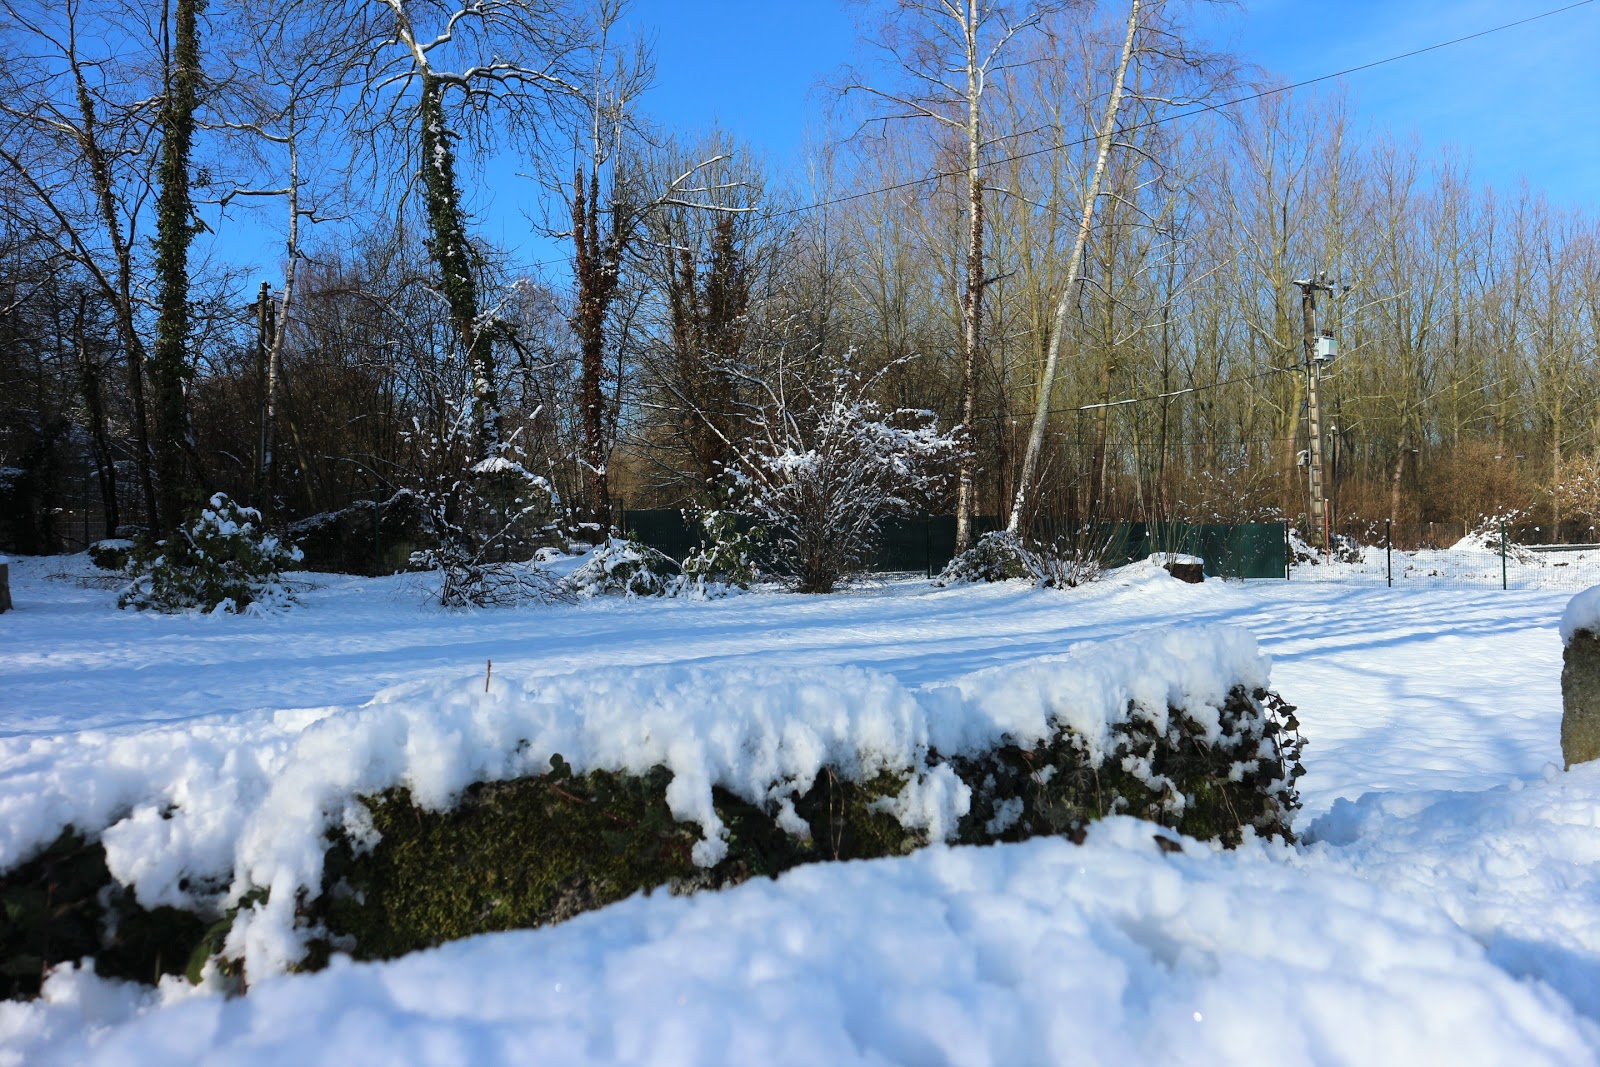 More snow in France / Heather Townsend / Suncream and Sparkles